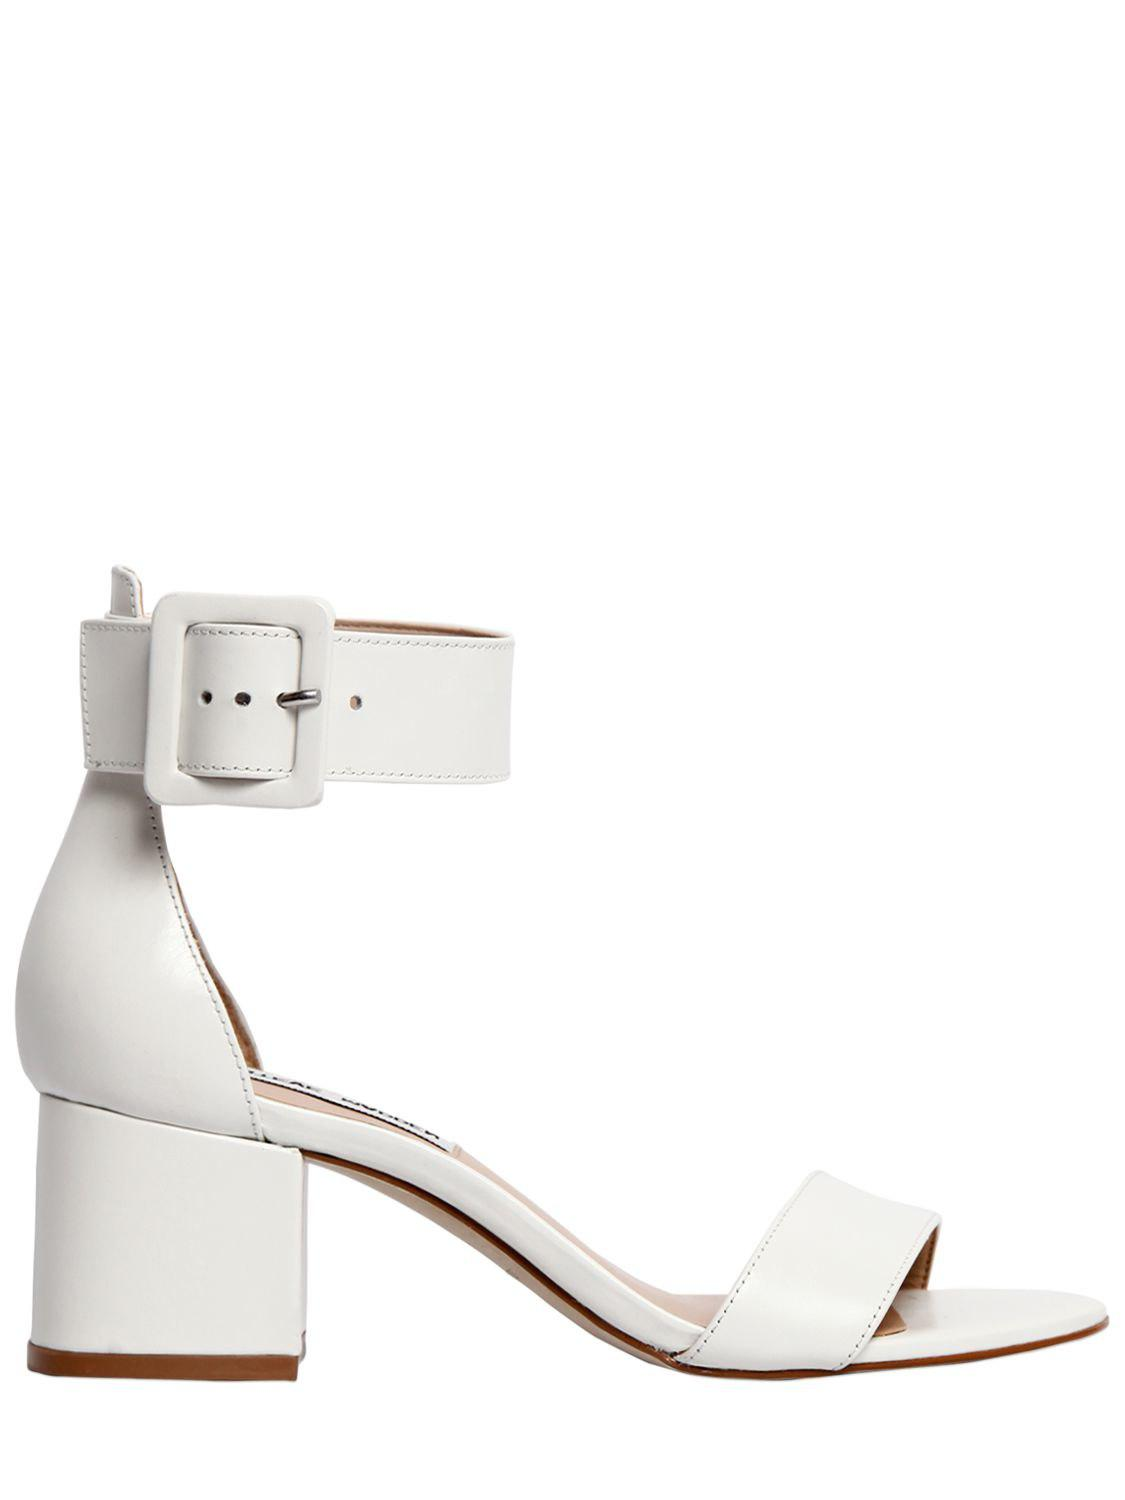 6a05232a2017 Steve Madden 55mm Indigo Leather Sandals in White - Lyst